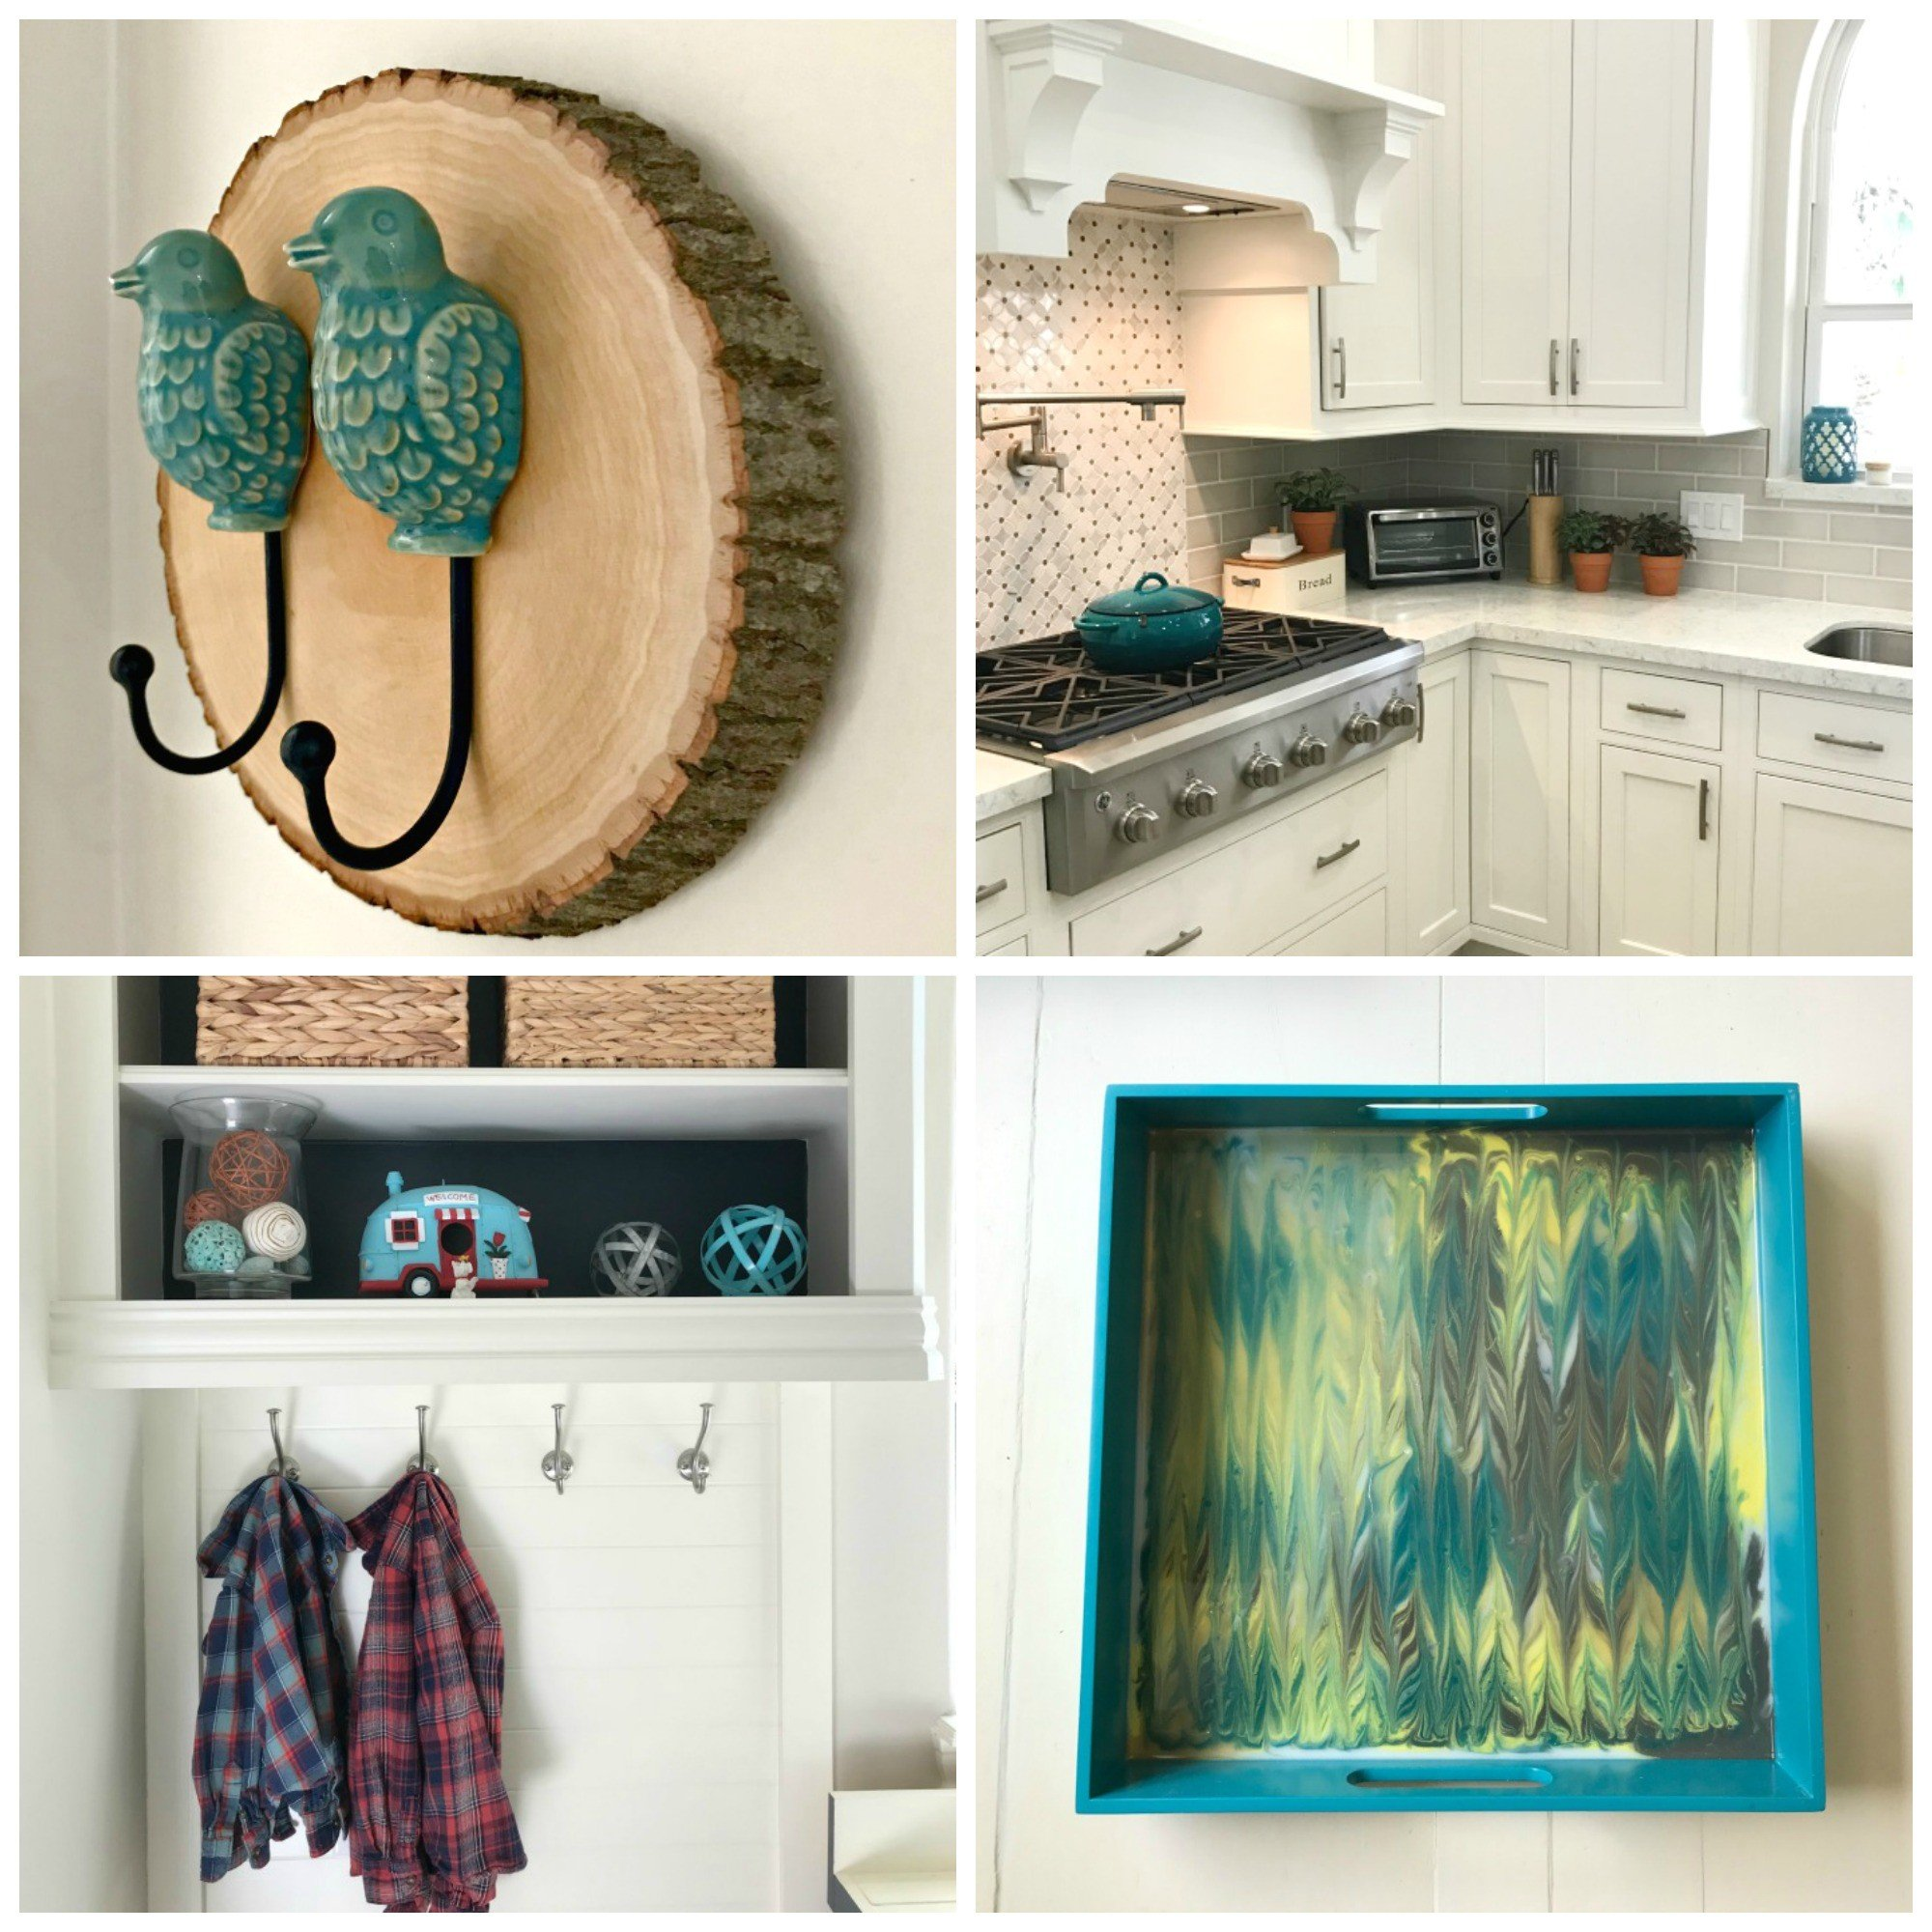 Some of the teal decor and accents I use around my house.